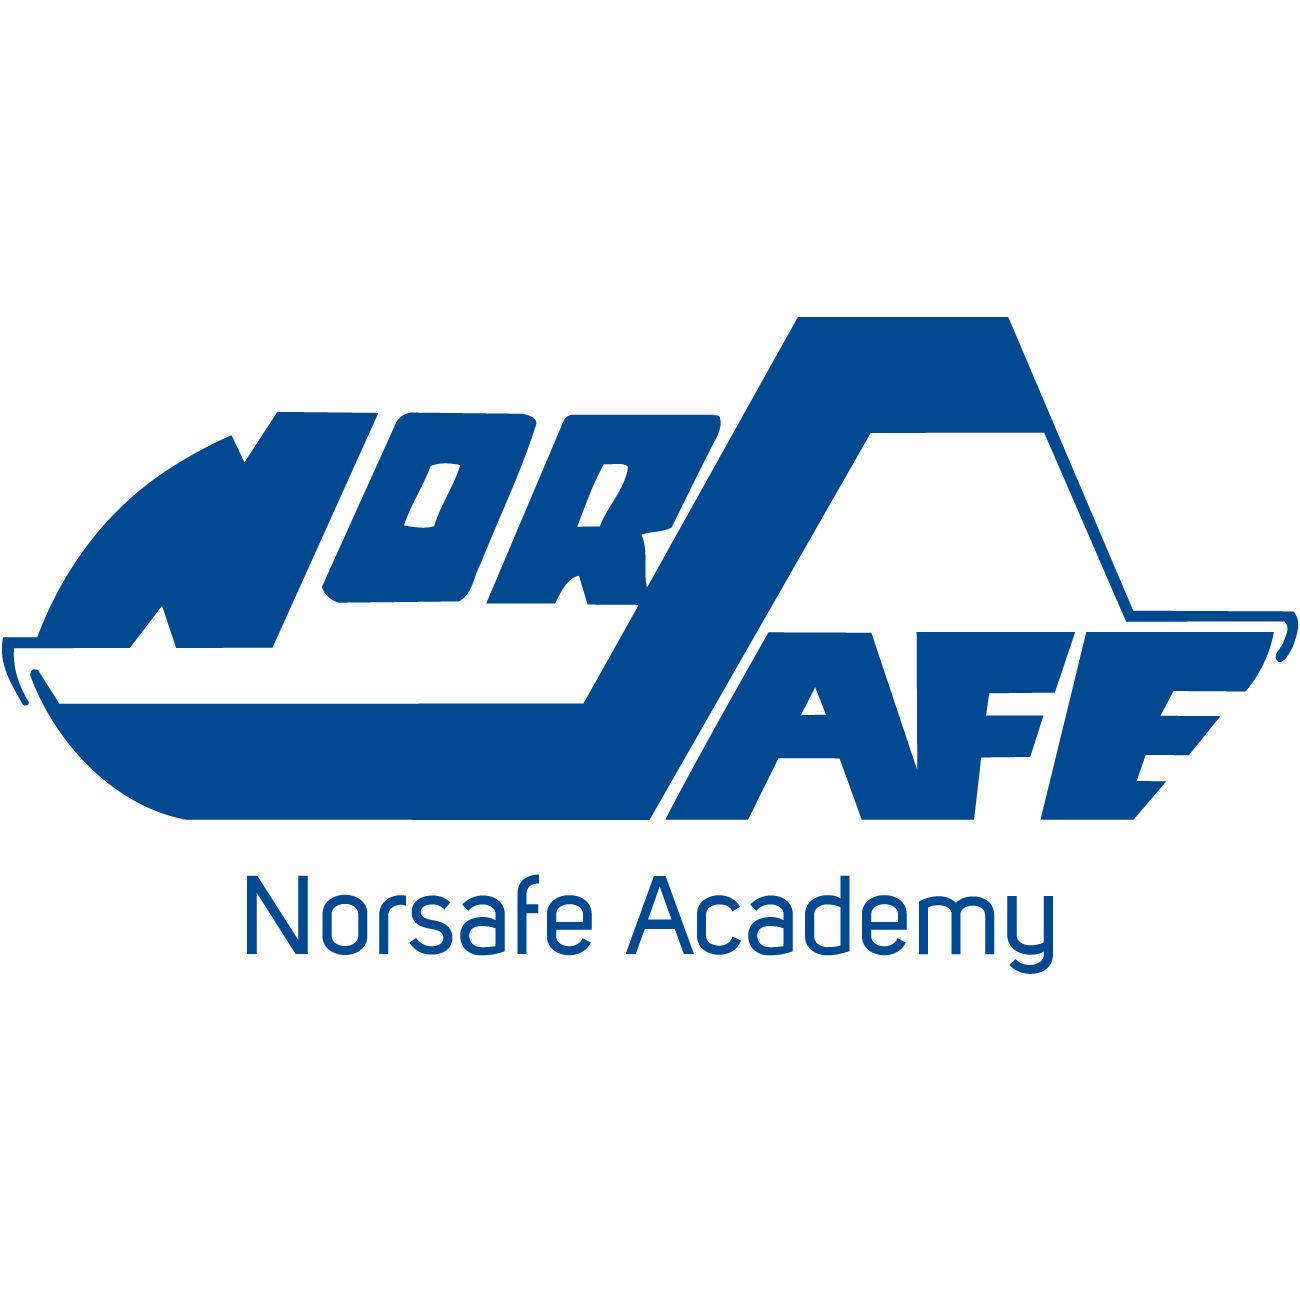 Norsafe1300x1296